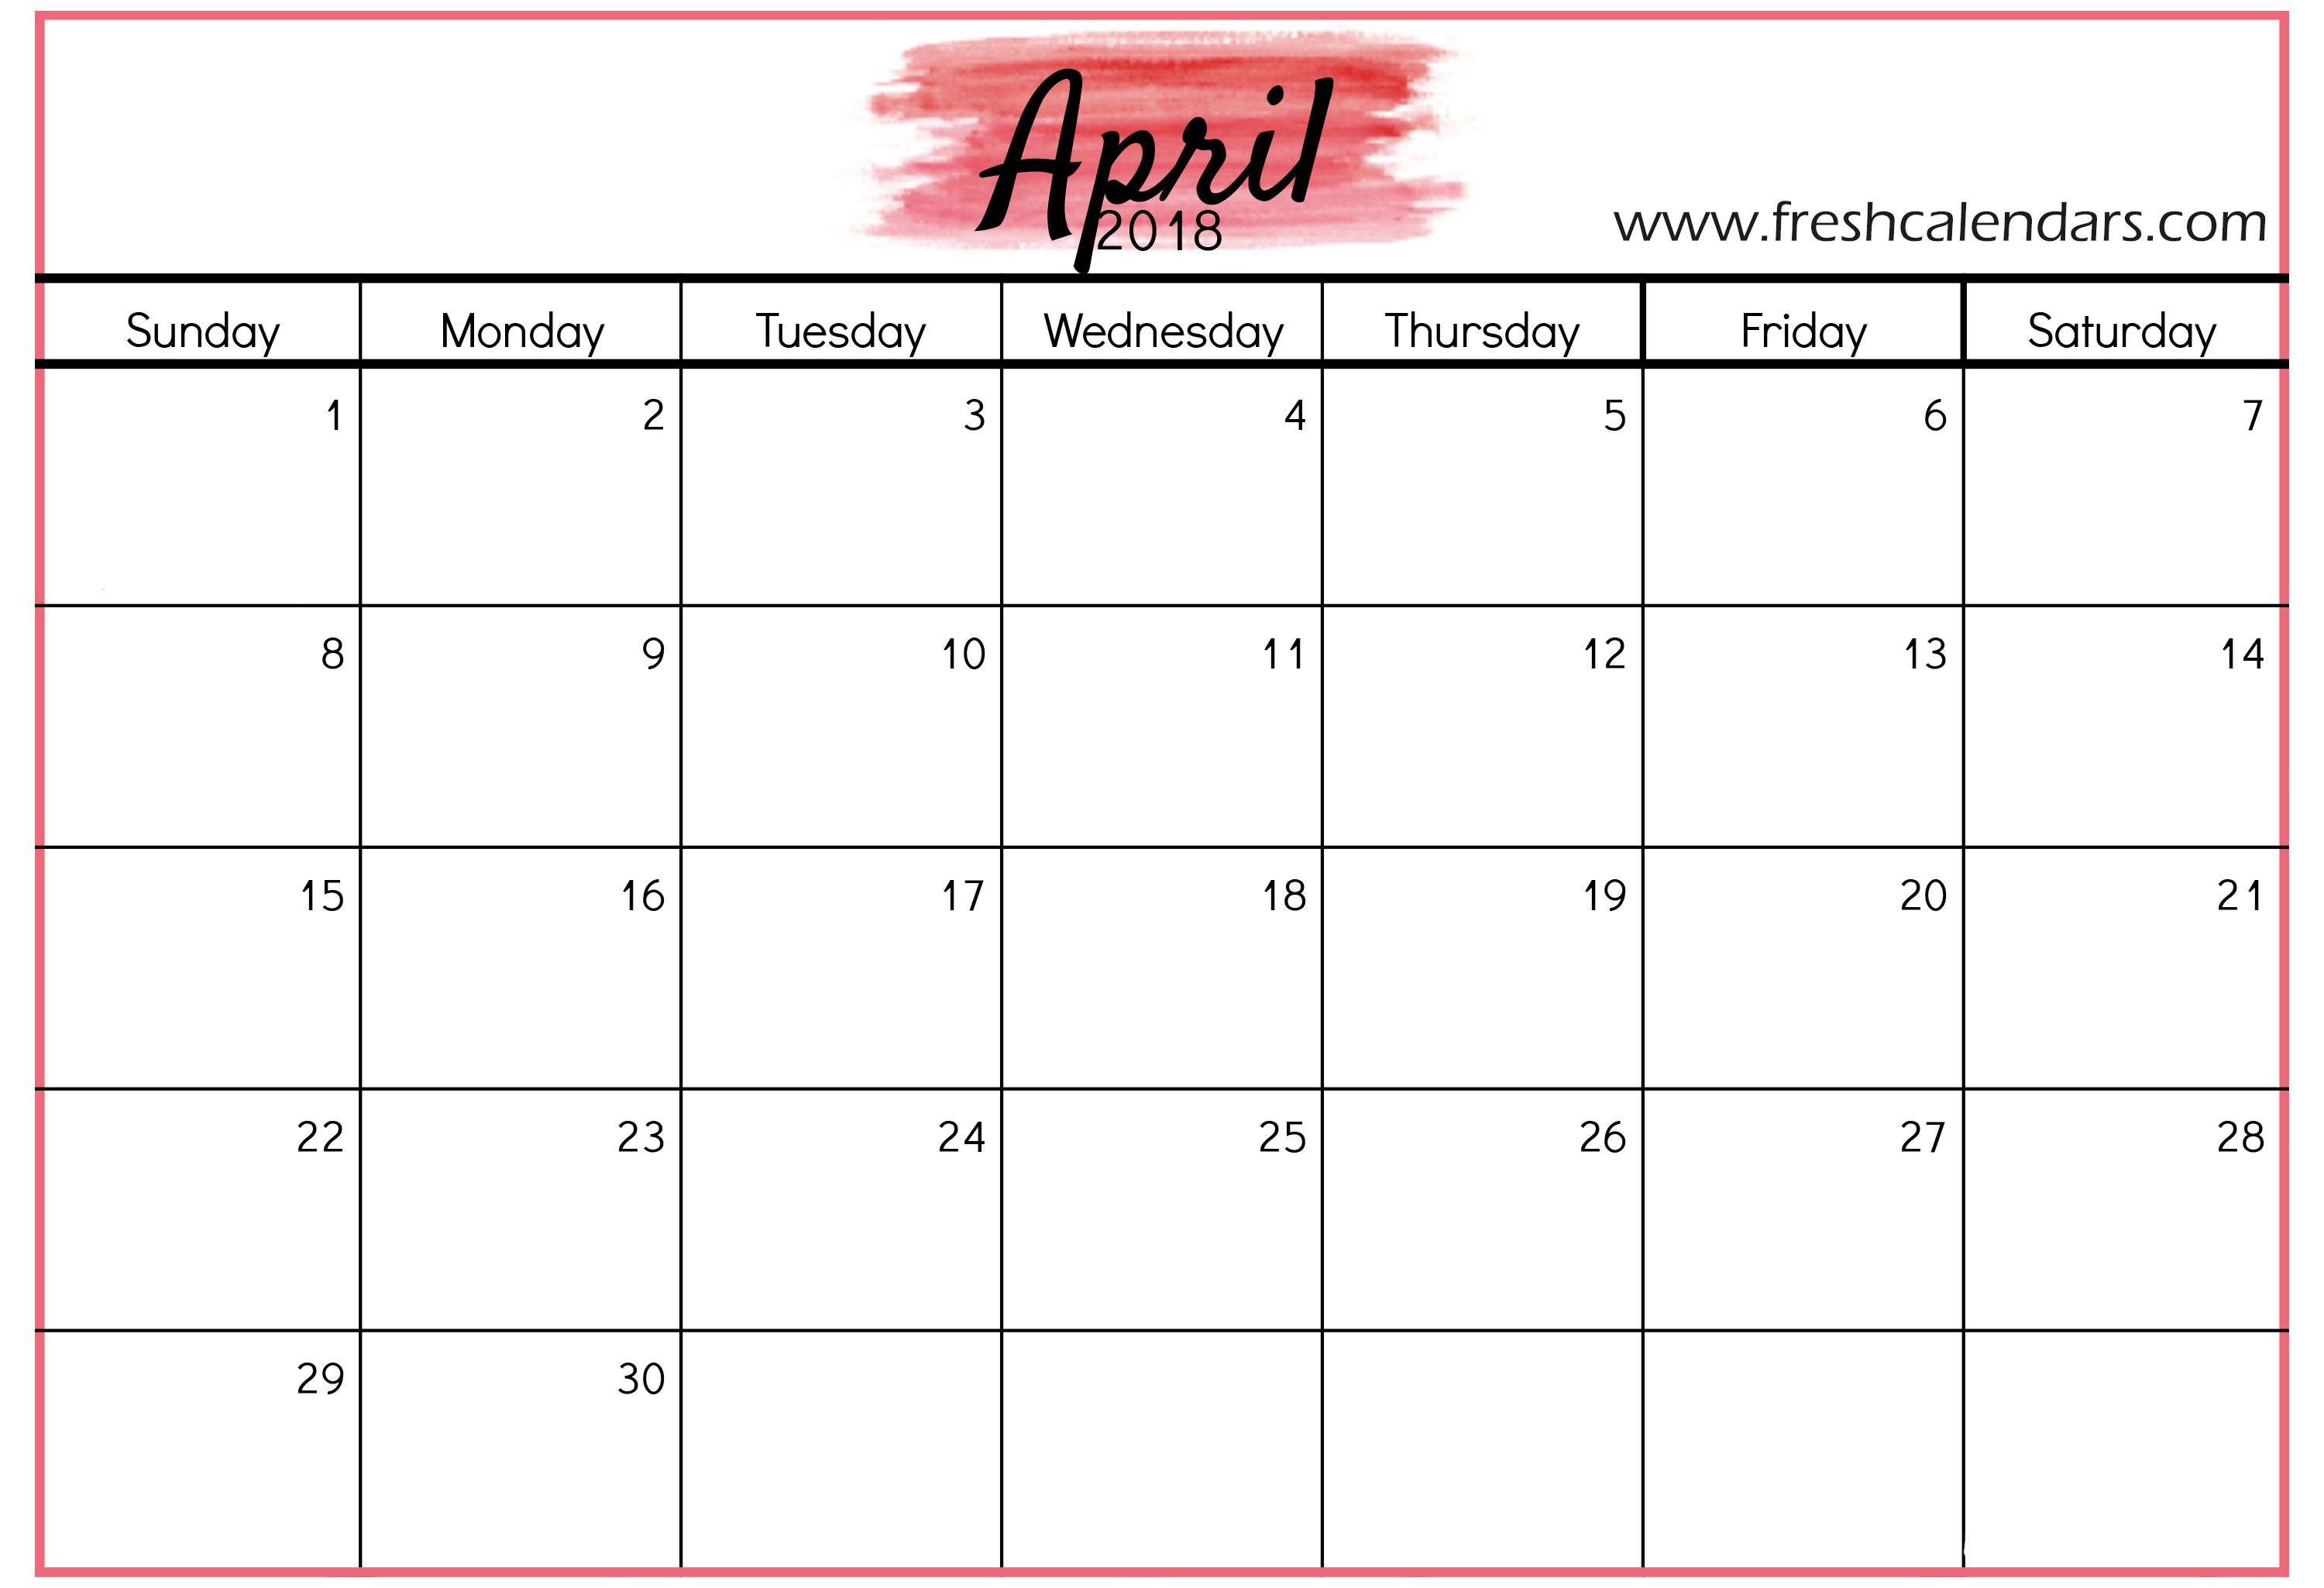 Apr 2018 Calendar Red Background Template Apr 2018 Calendar Red Background Template